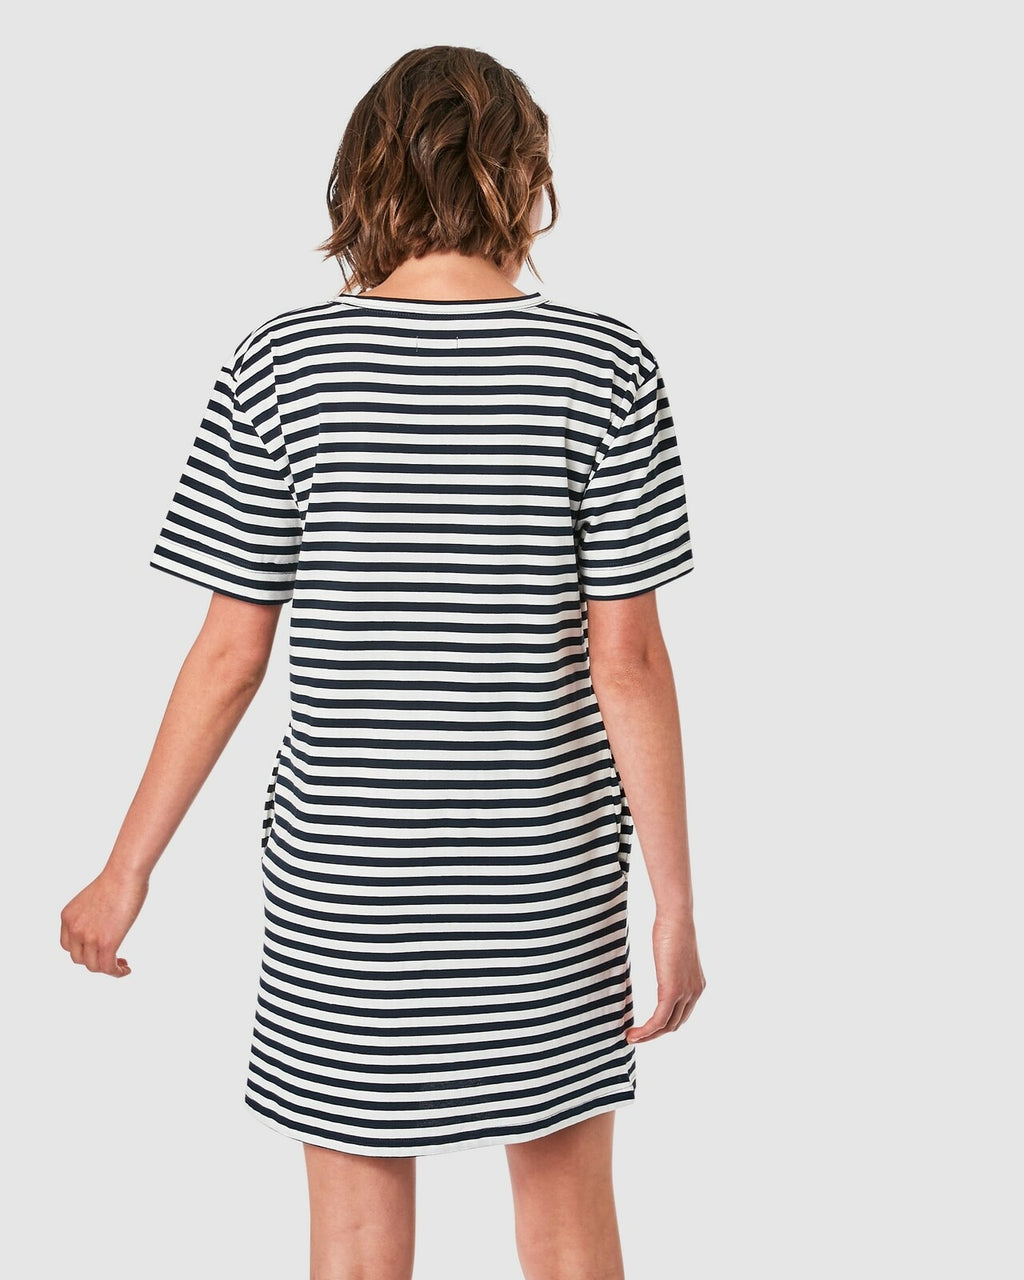 Elwood / Ally Dress / Navy/White Stripe